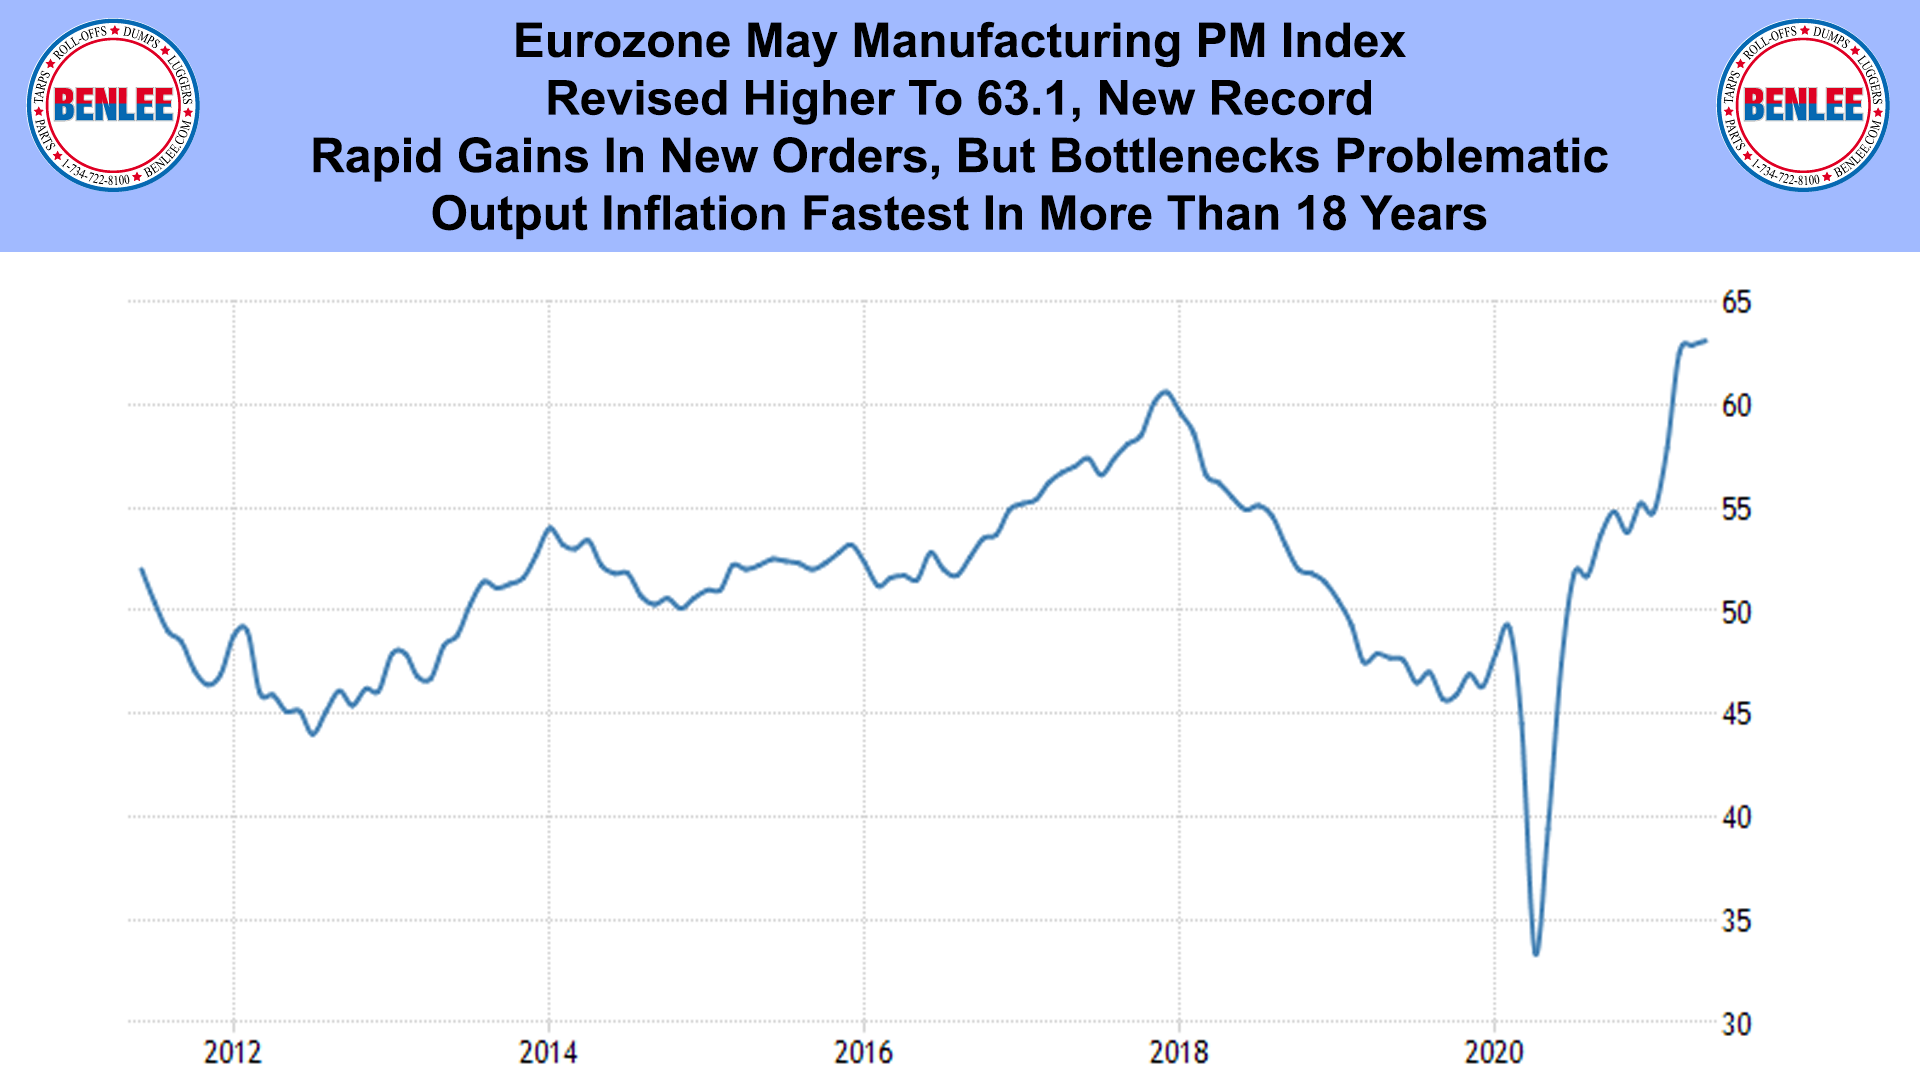 Eurozone May Manufacturing PM Index